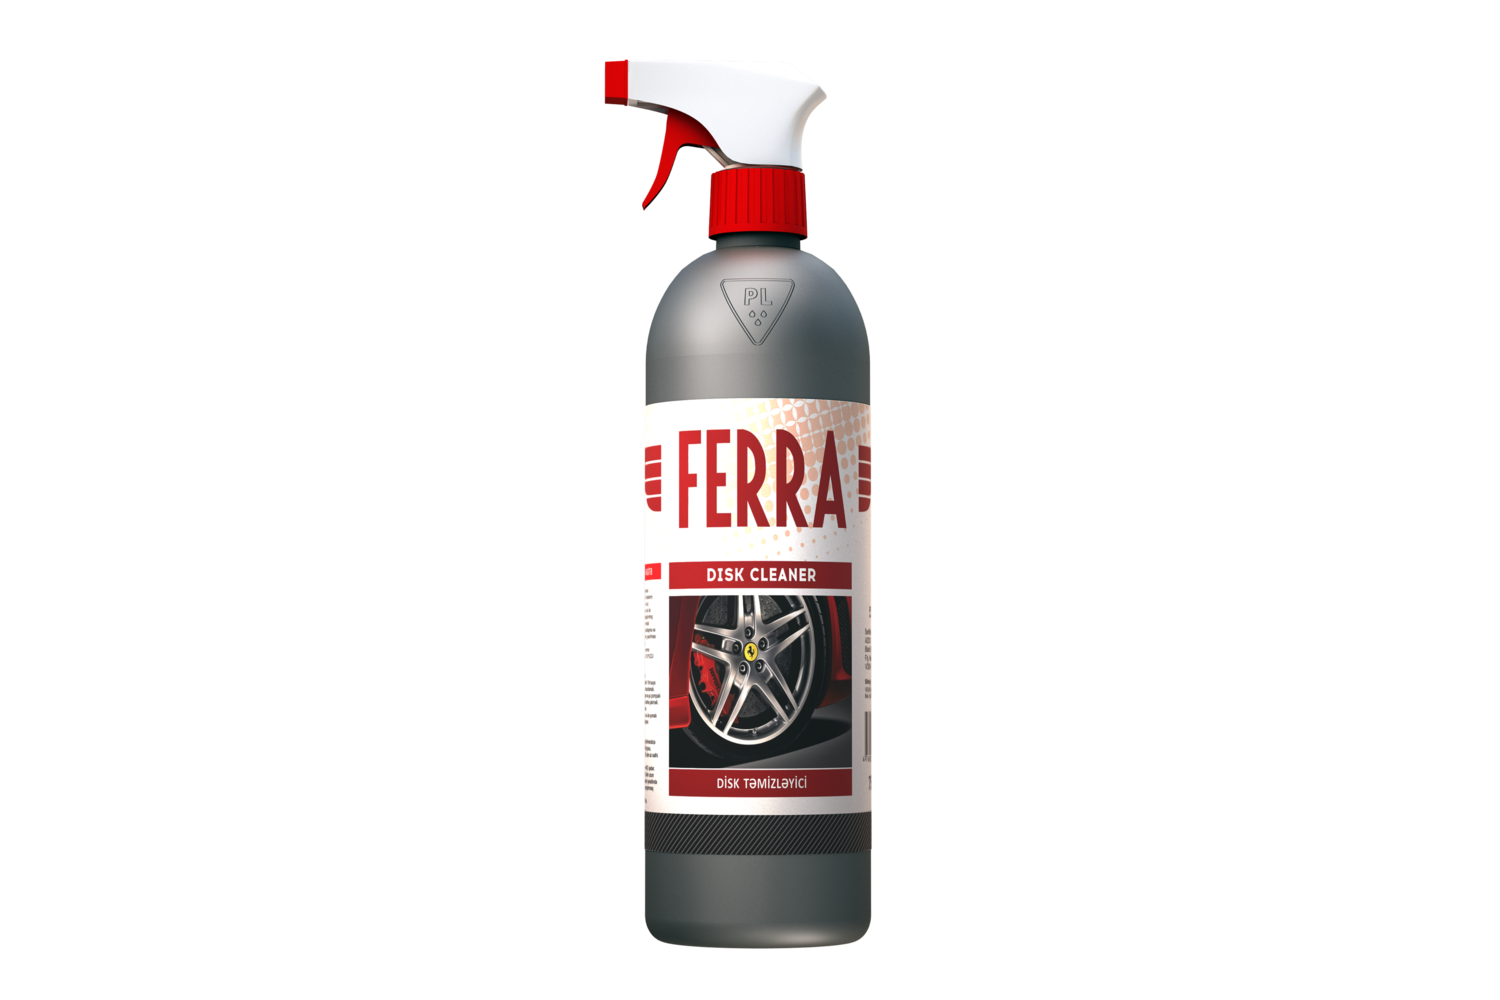 "<span style=""font-weight: bold;"">ferra disc cleaner</span>"